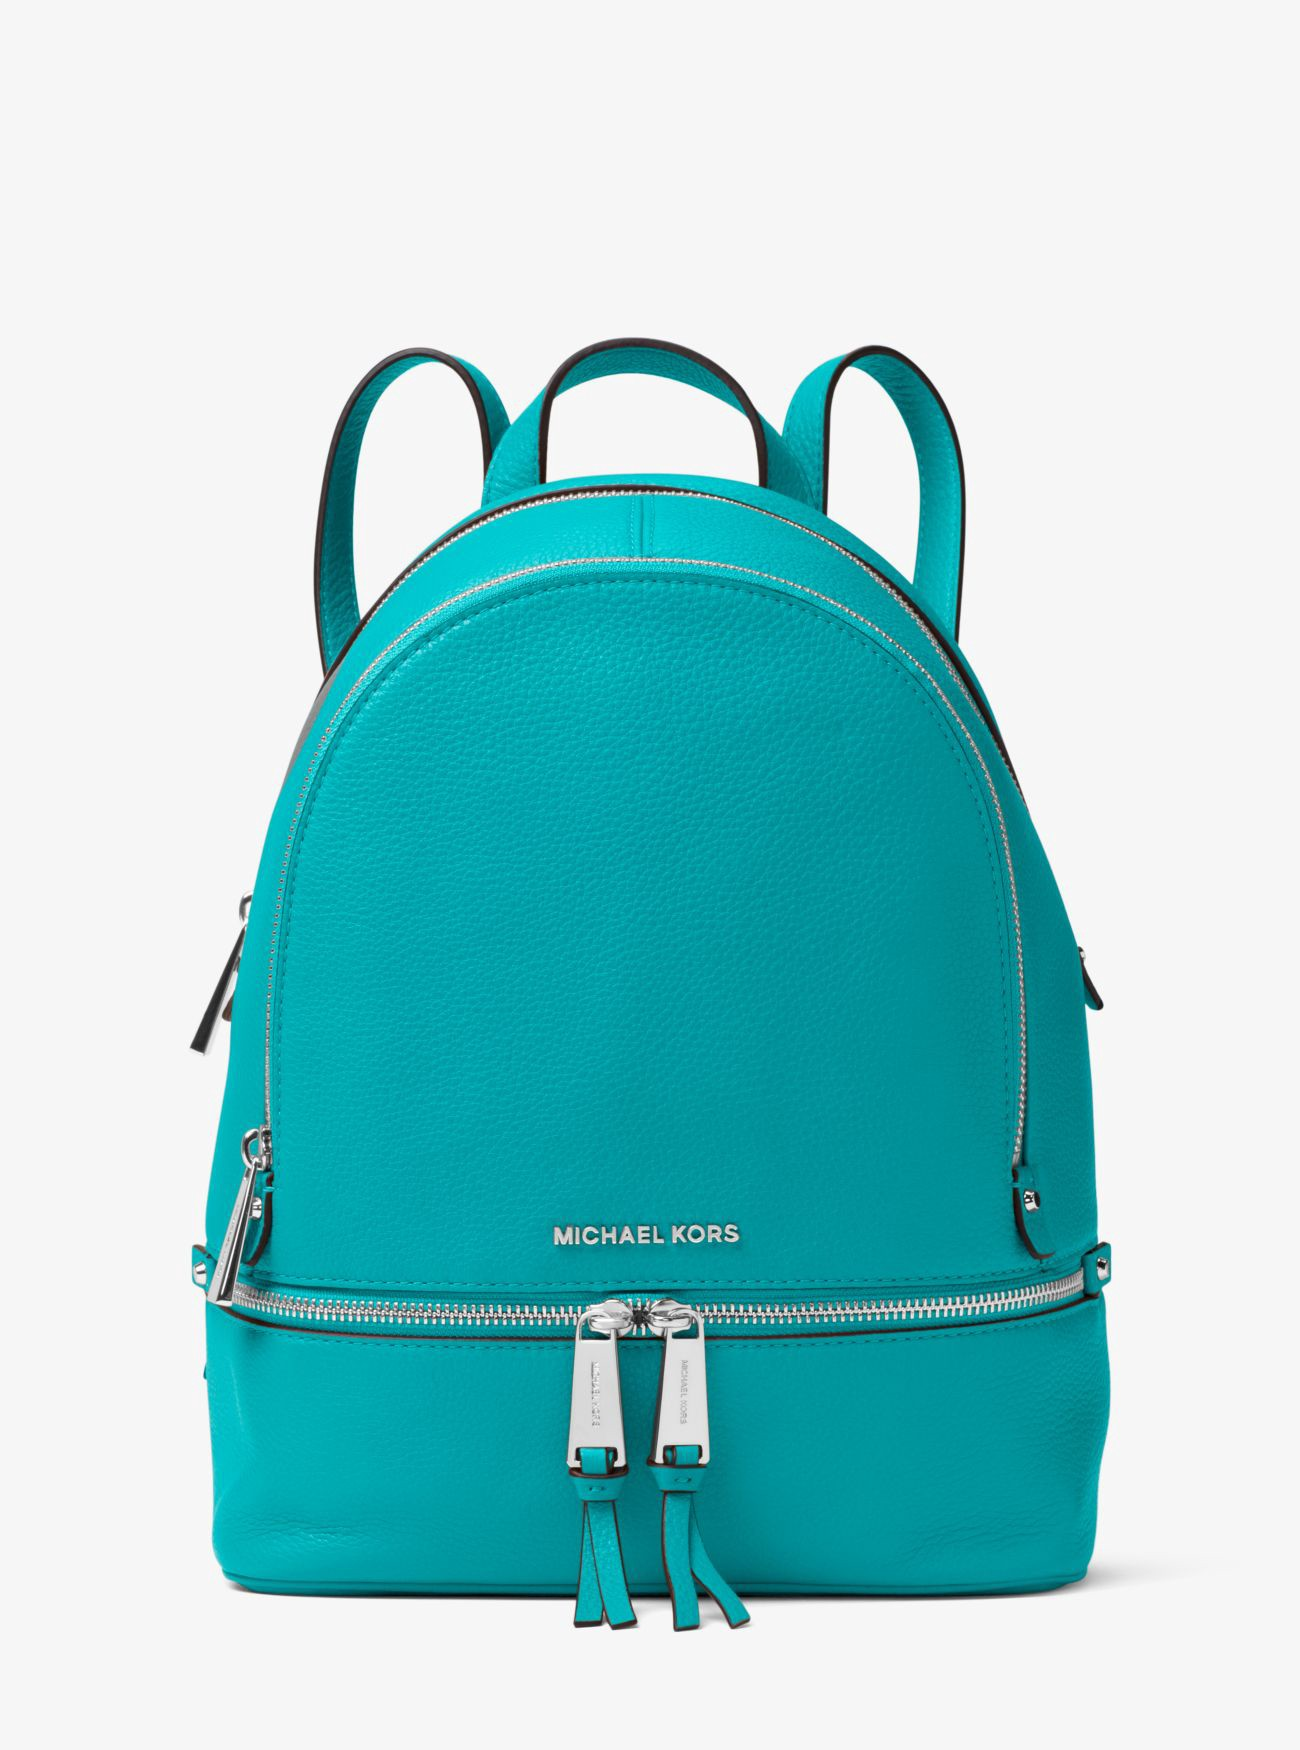 bd798bc6c270 Rhea Medium Leather Backpack by Michael Kors | Bags | Leather ...